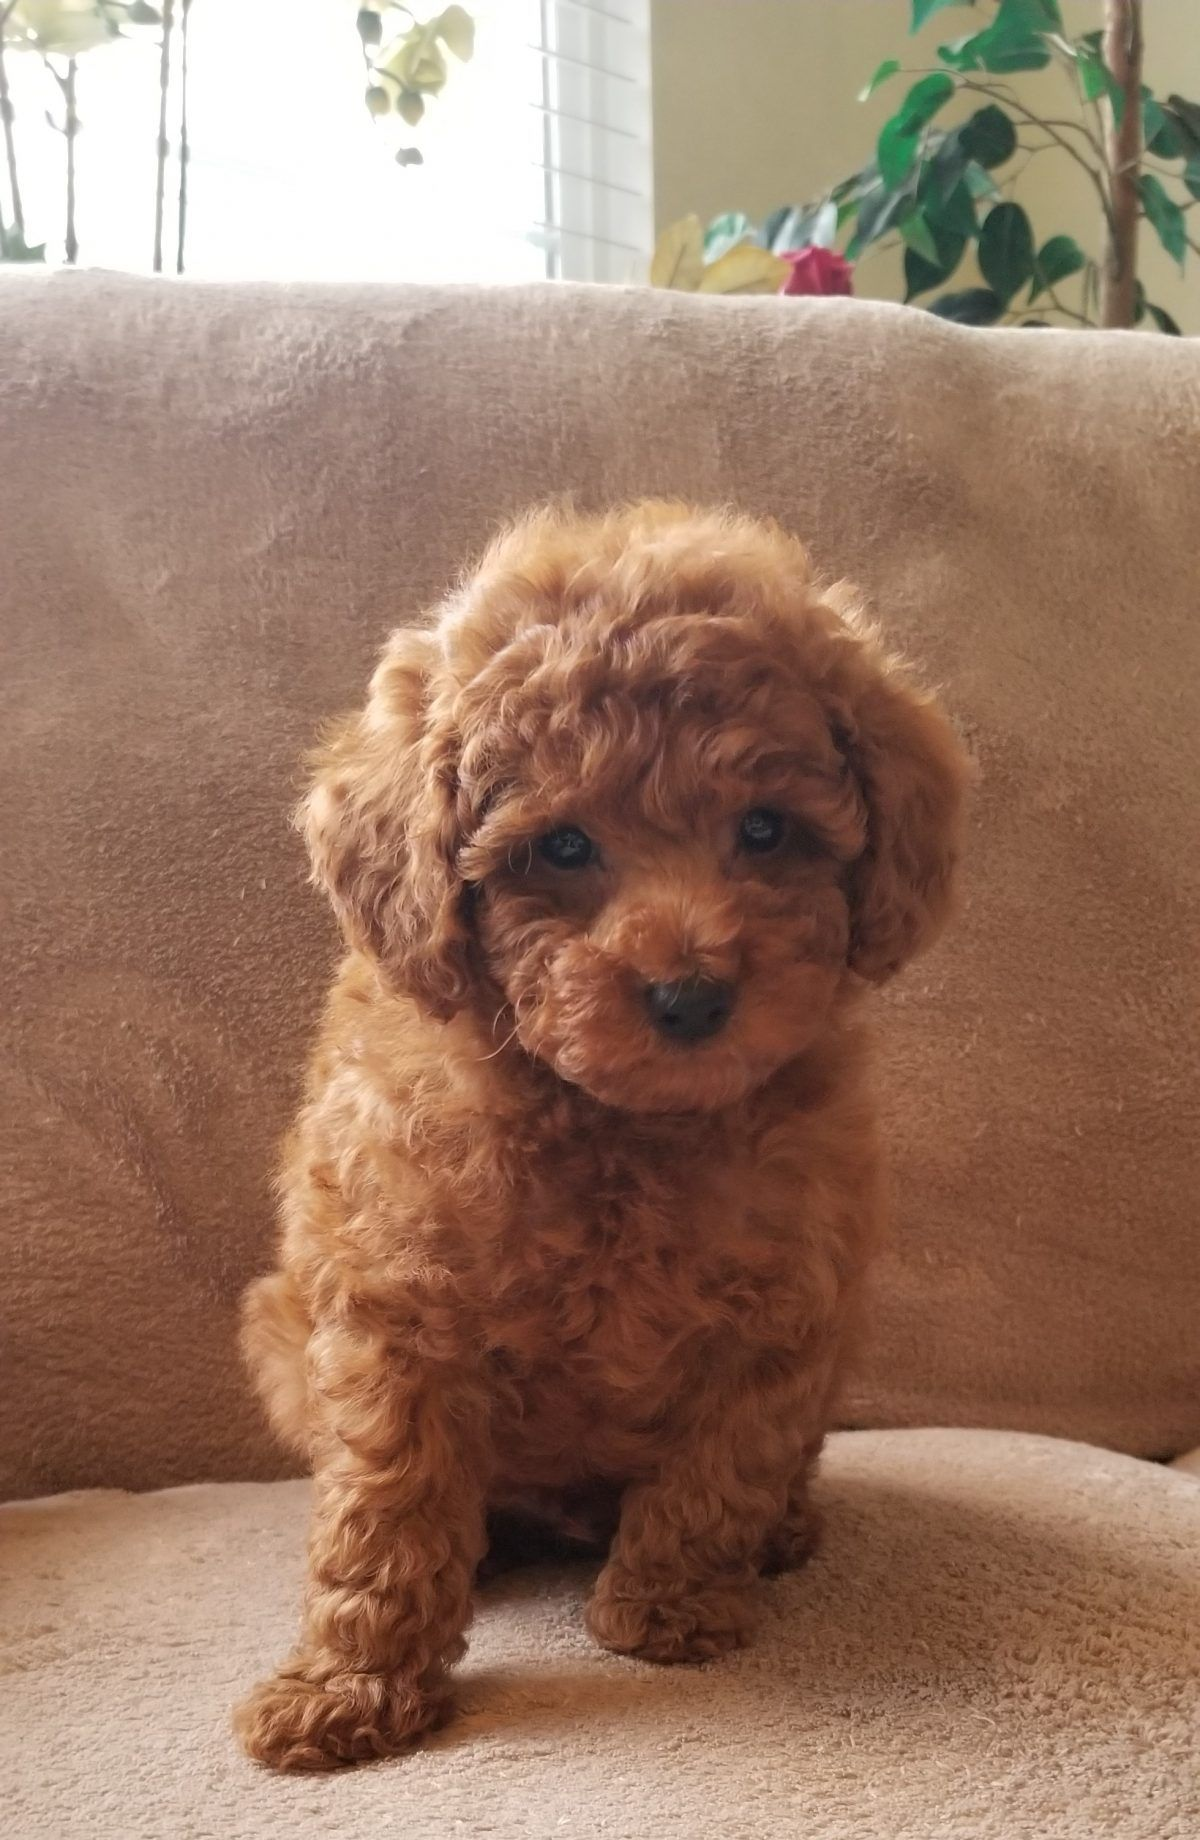 Tiger male AKC Poodle puppy for sale in Oxnard